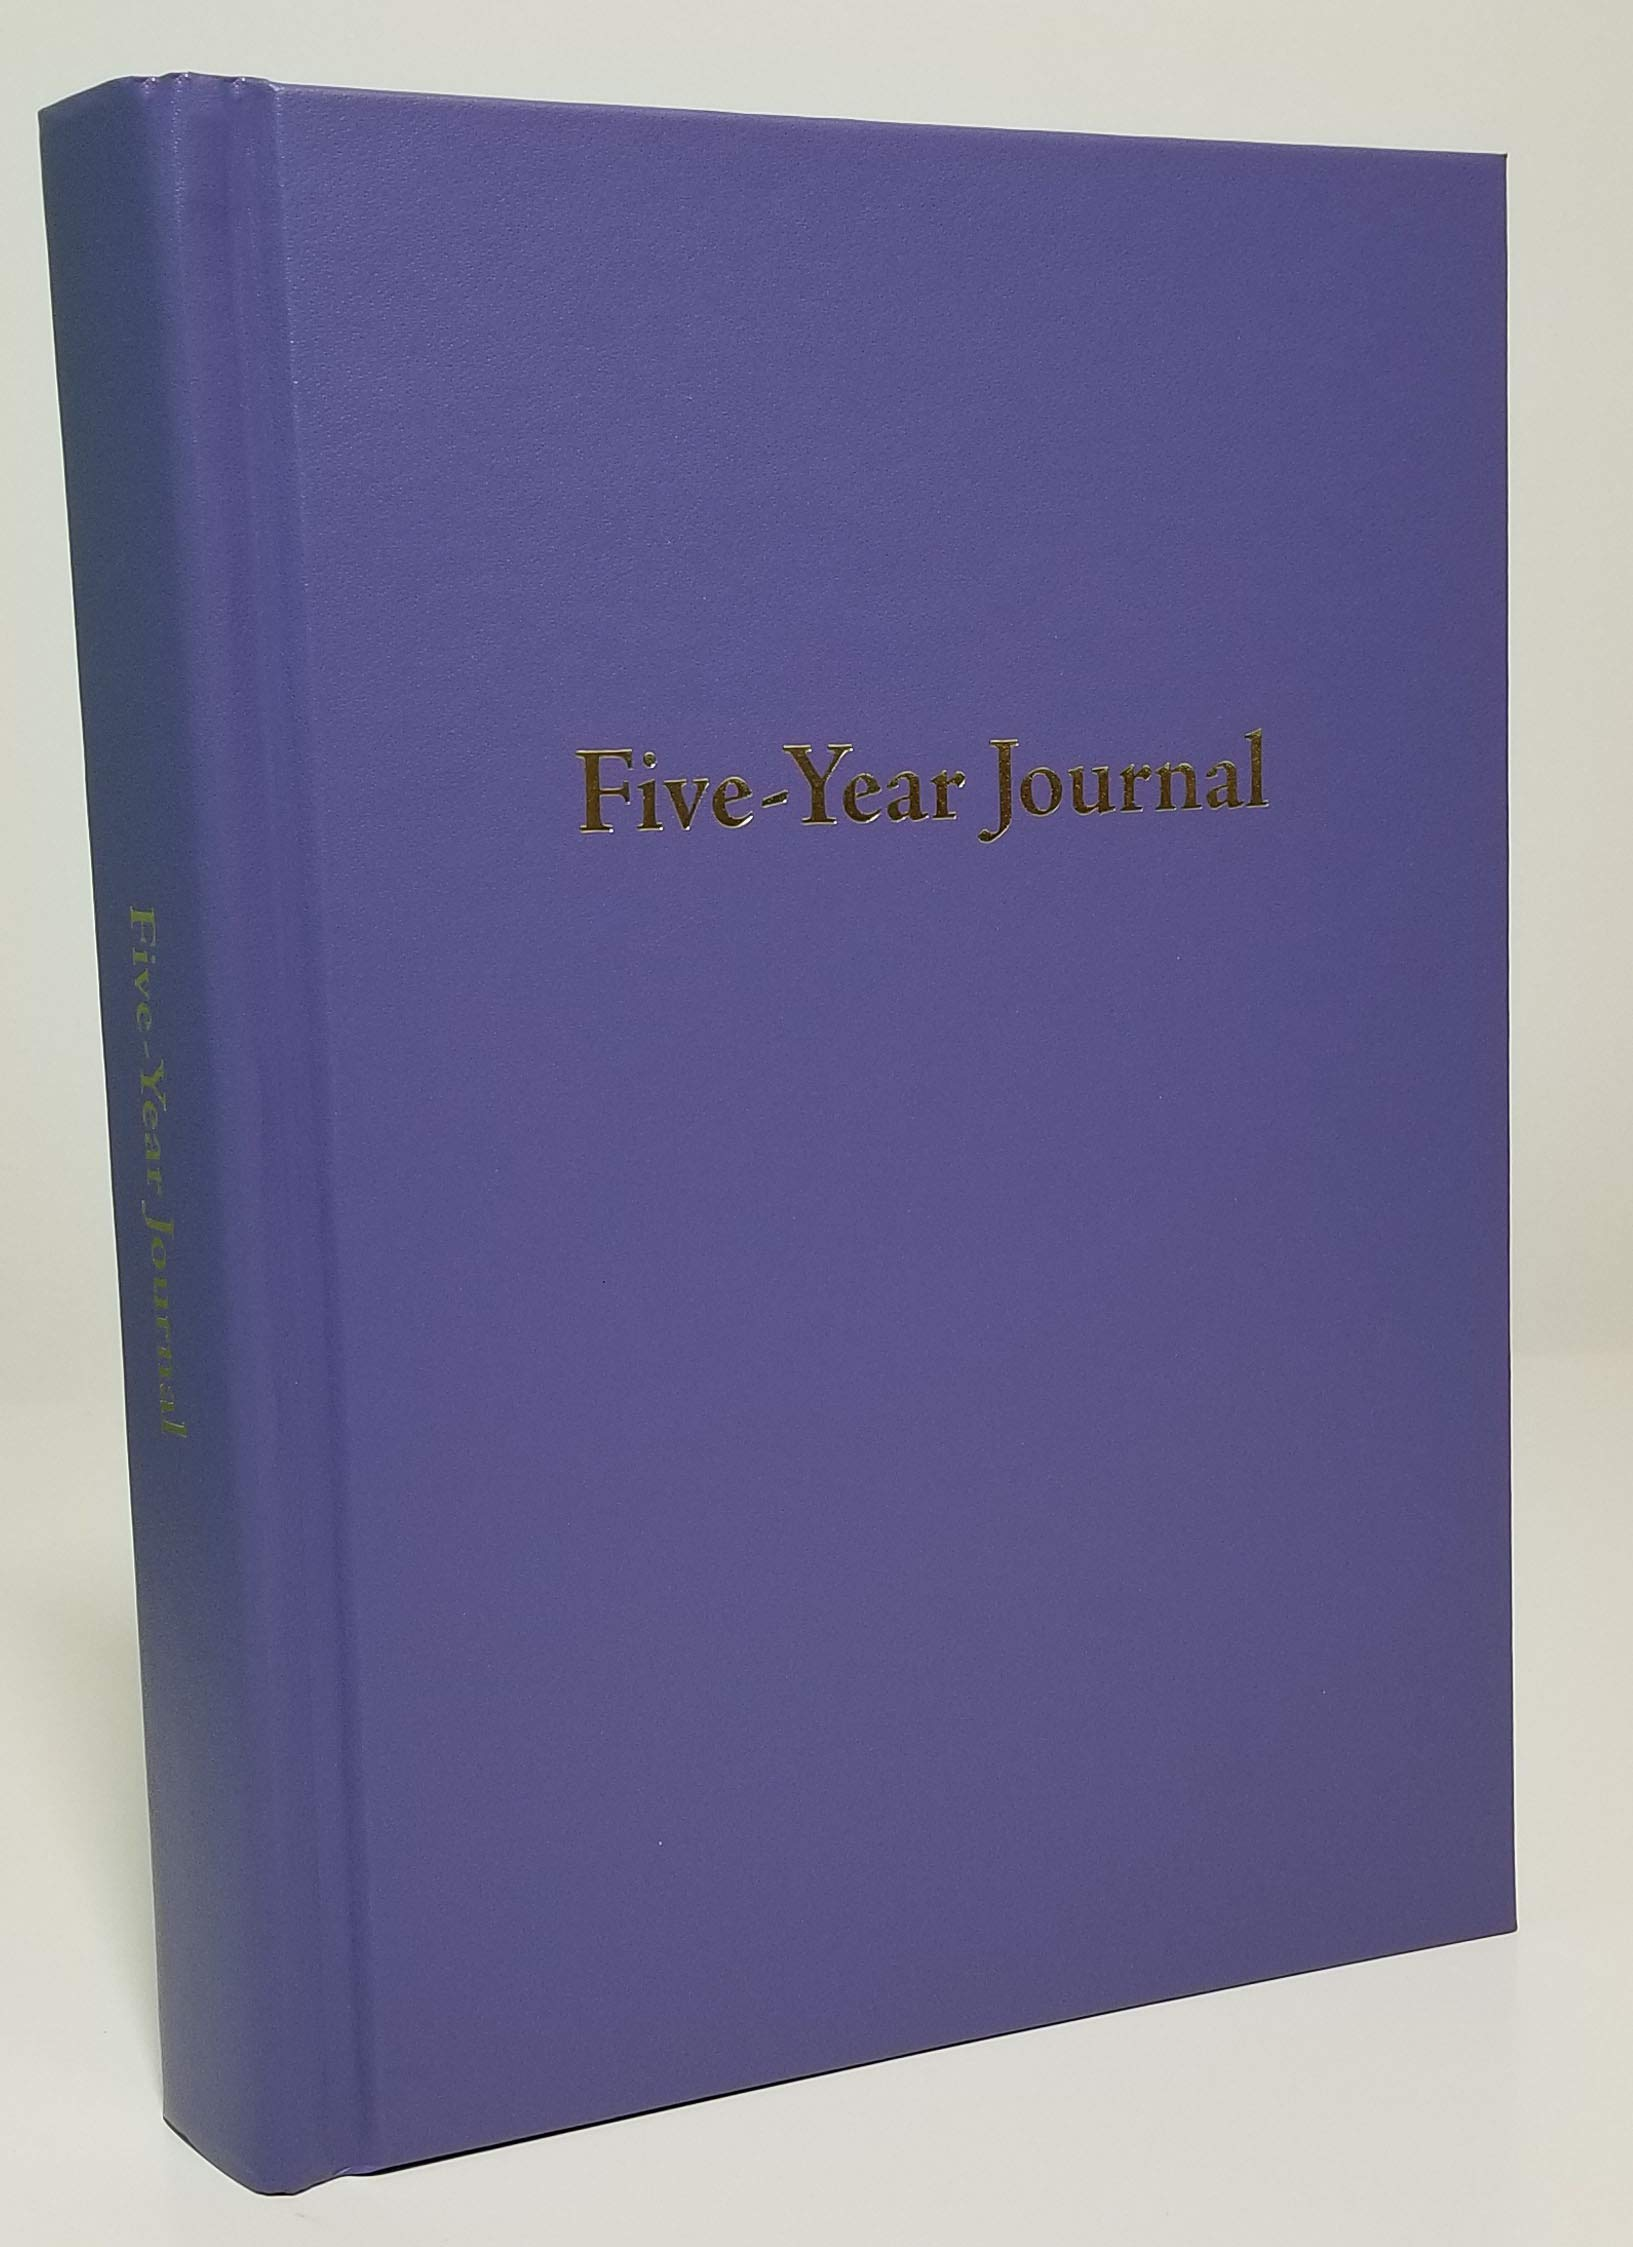 Hard Cover 5 Year Journal | The Easiest to Use Five Year Journal | Quick and Easy Five Year Daily Journal System | 6x8.25 Inch Size (Periwinkle Blue)